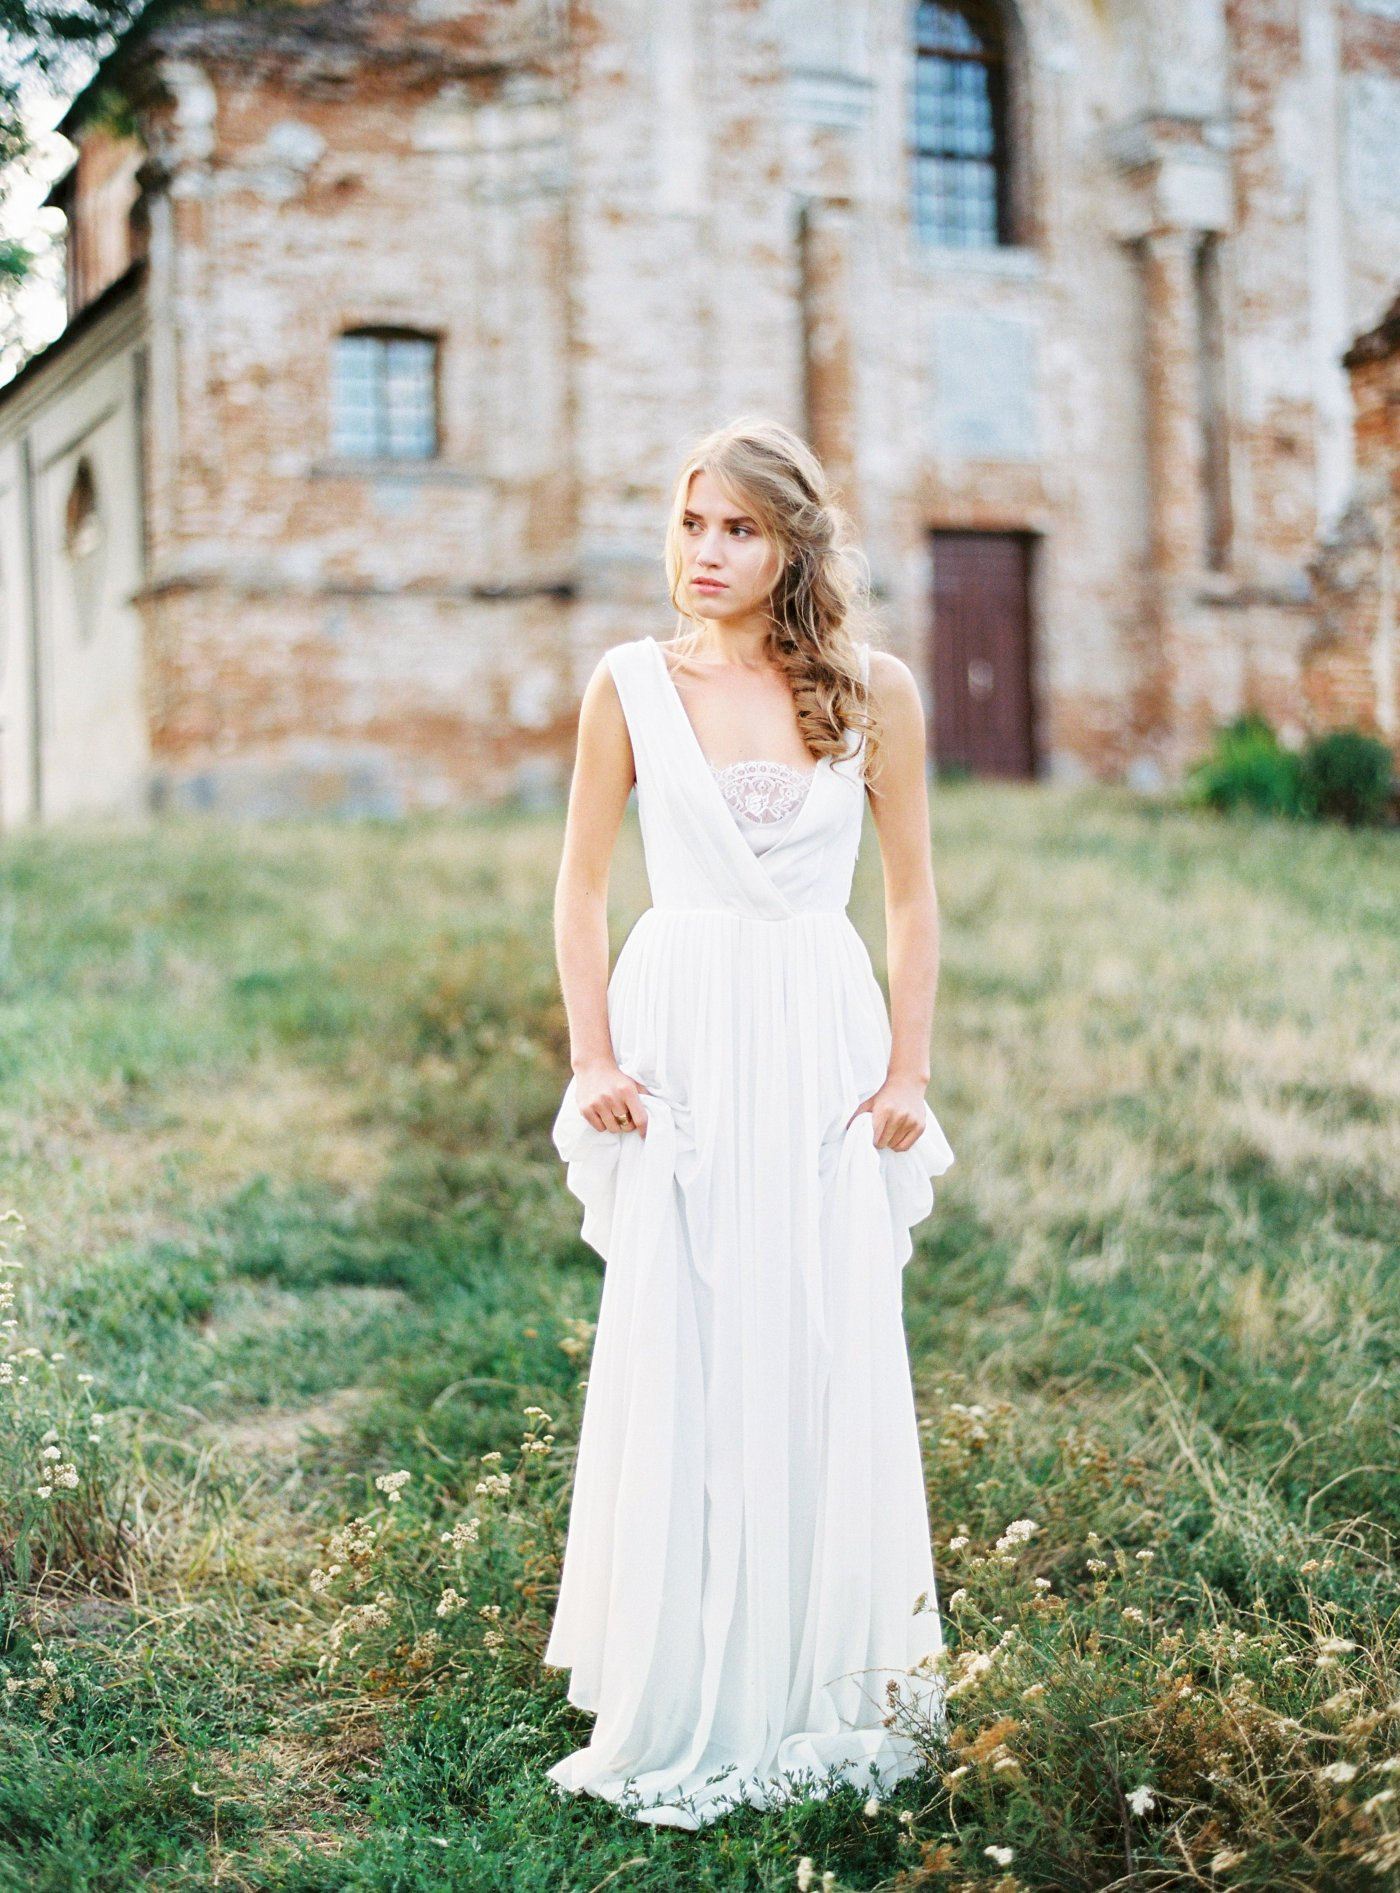 f90ae036e53cc Off-white sleeveless v-neck wedding dress with cotton slip | Cathy Telle